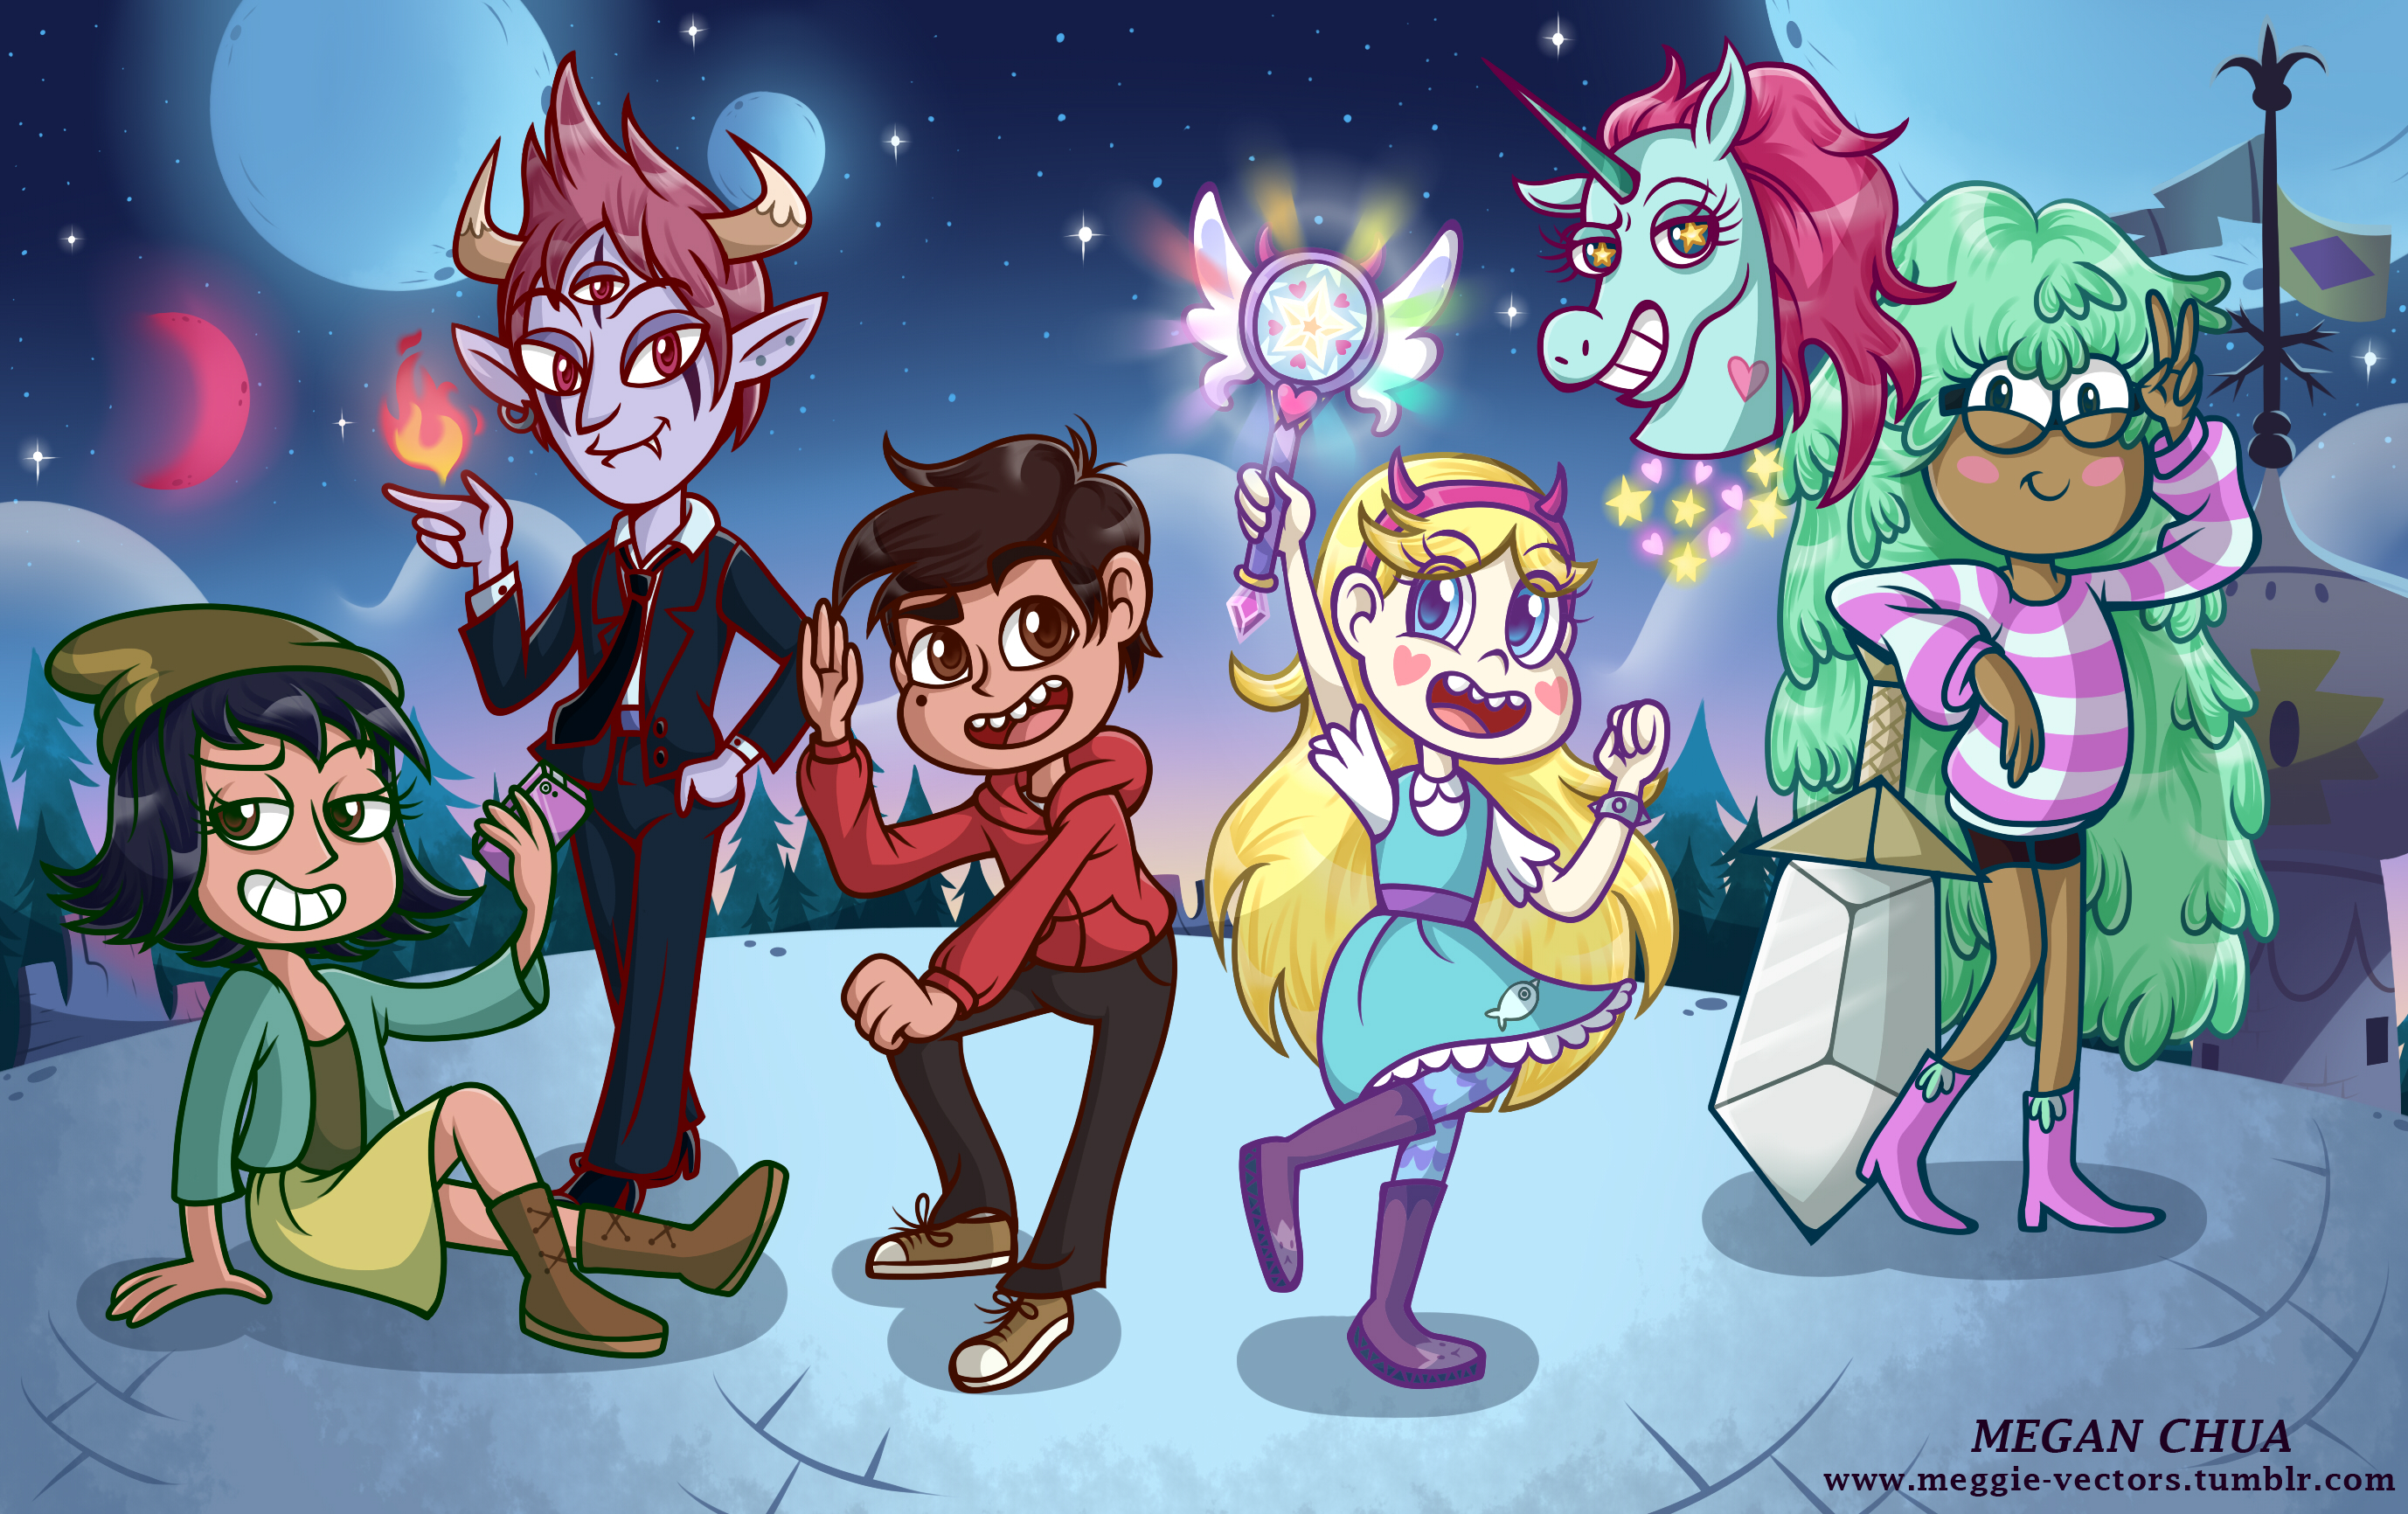 star vs. the forces of evi